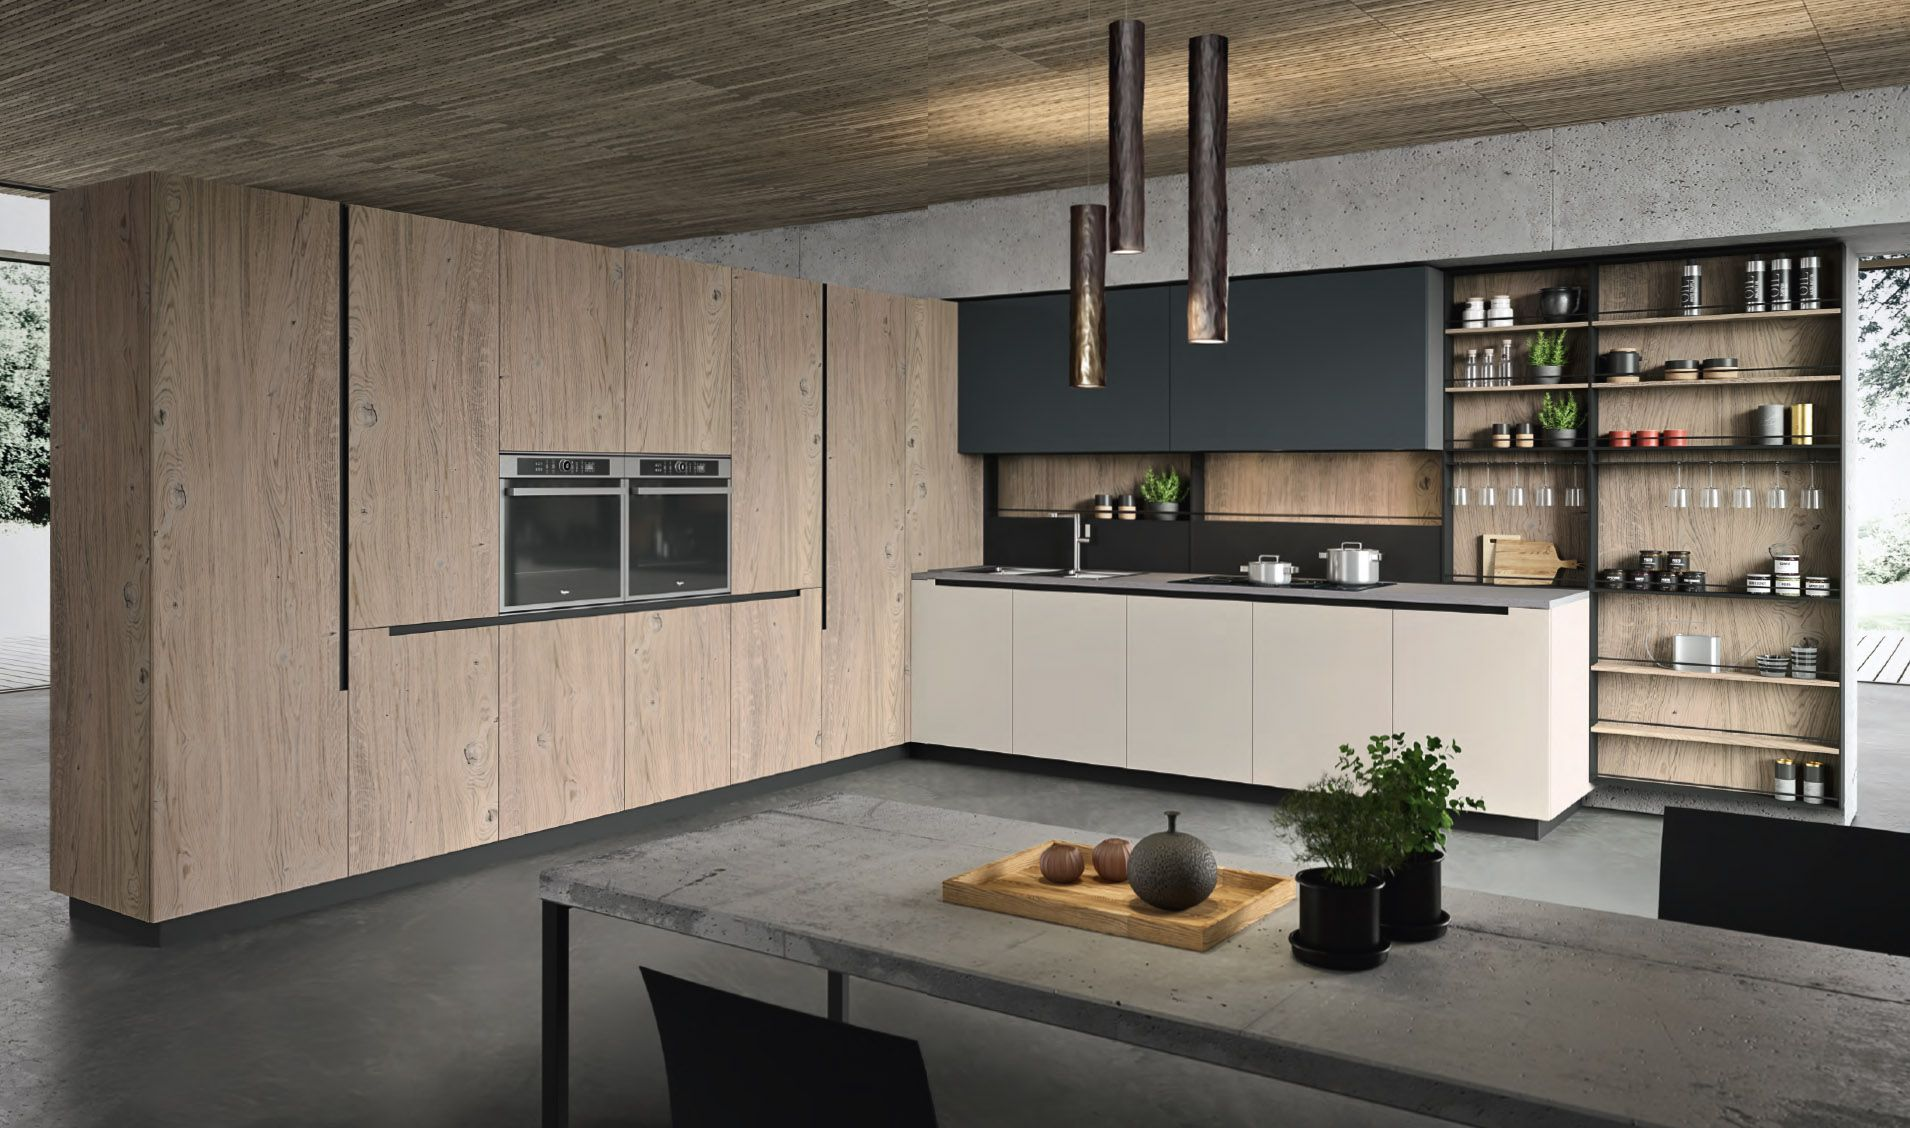 Introducing the new Lab 13 kitchen from Aran Cucine at